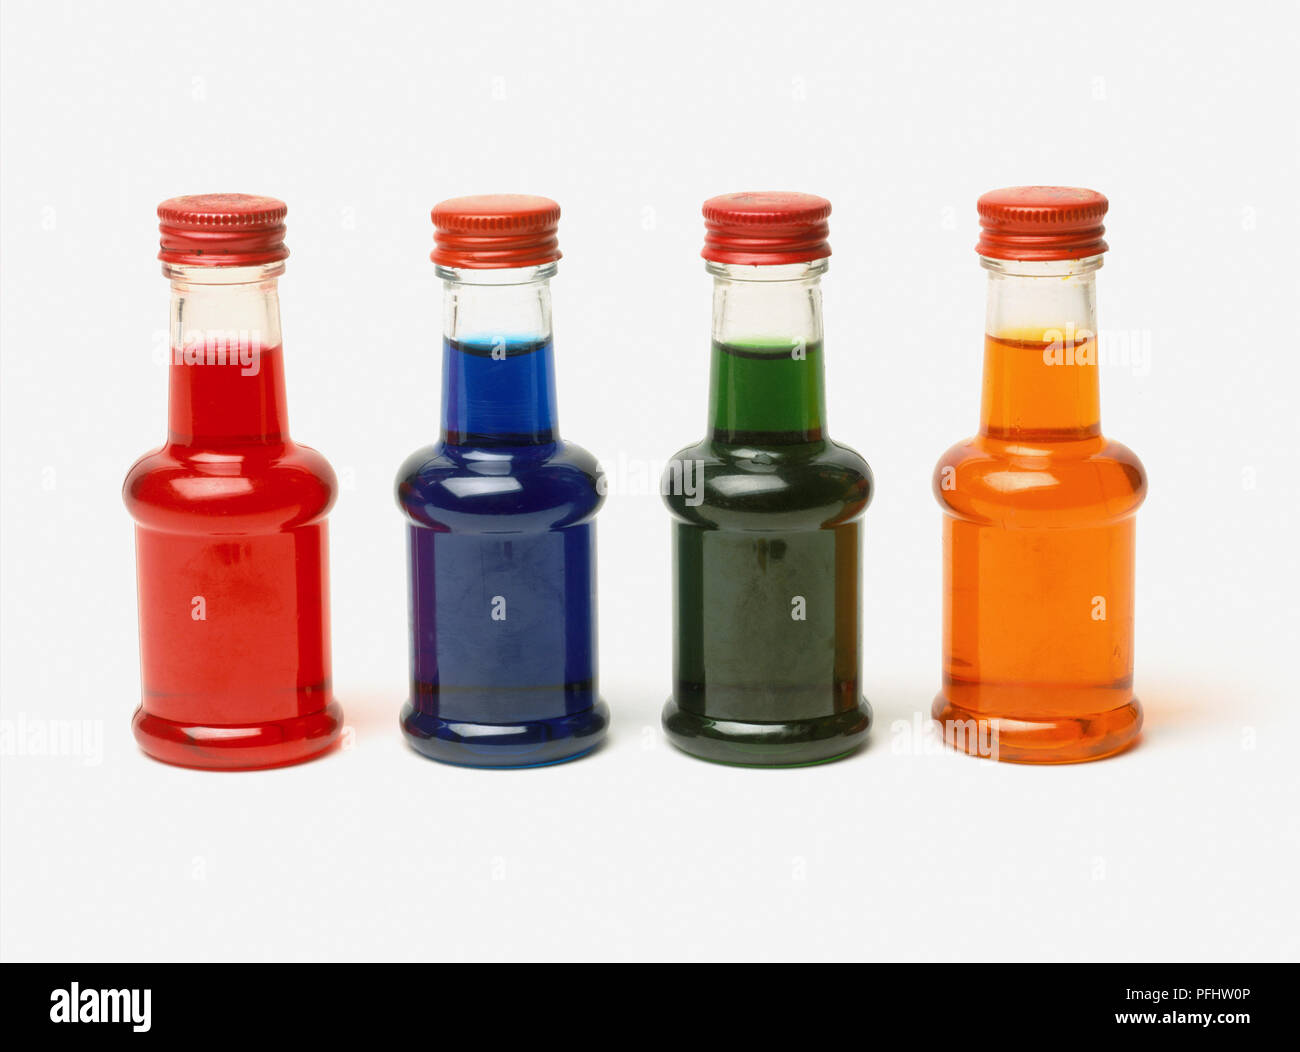 Bottles of red, blue, green and yellow food colouring, close up ...